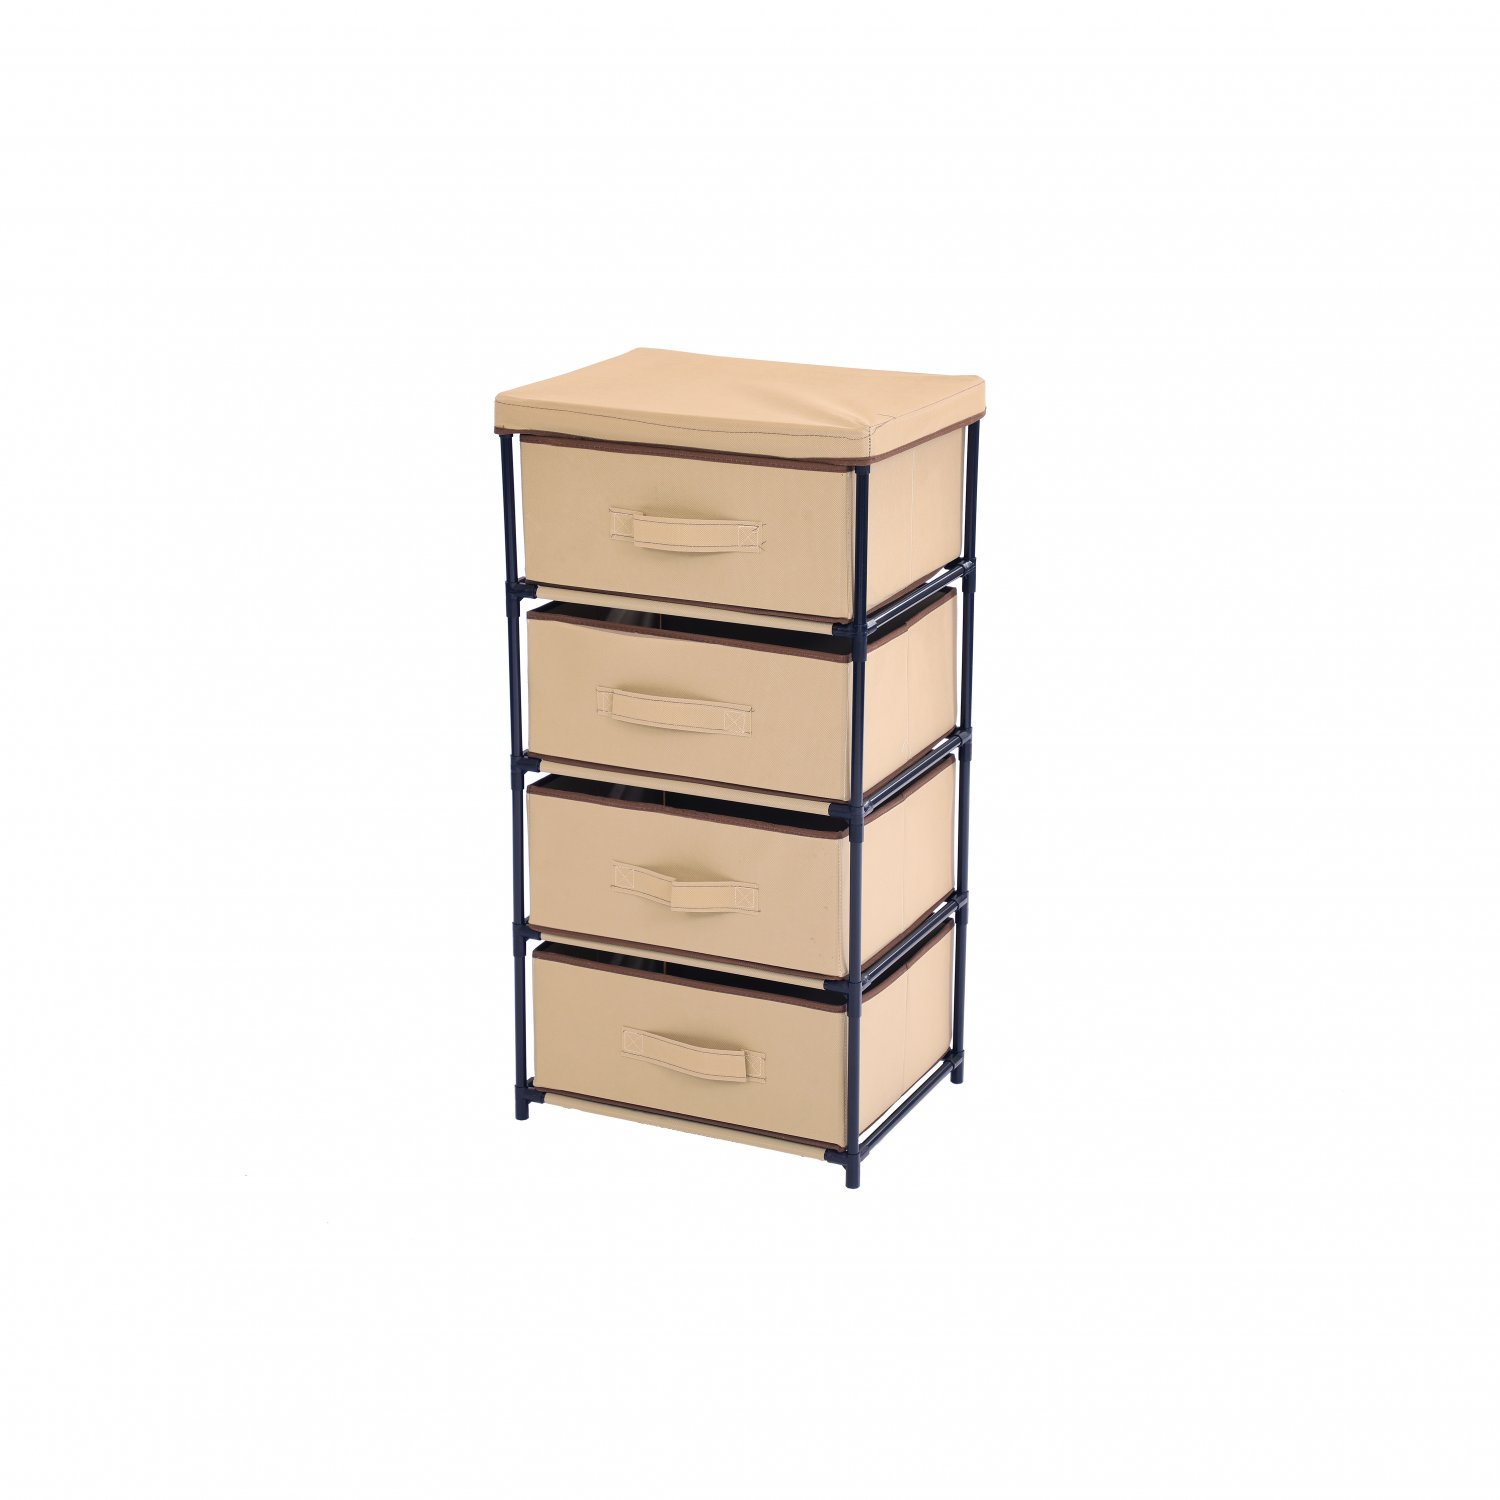 Beige 4 Tier Fabric Storage Unit Organiser Chest of Drawers Bedr